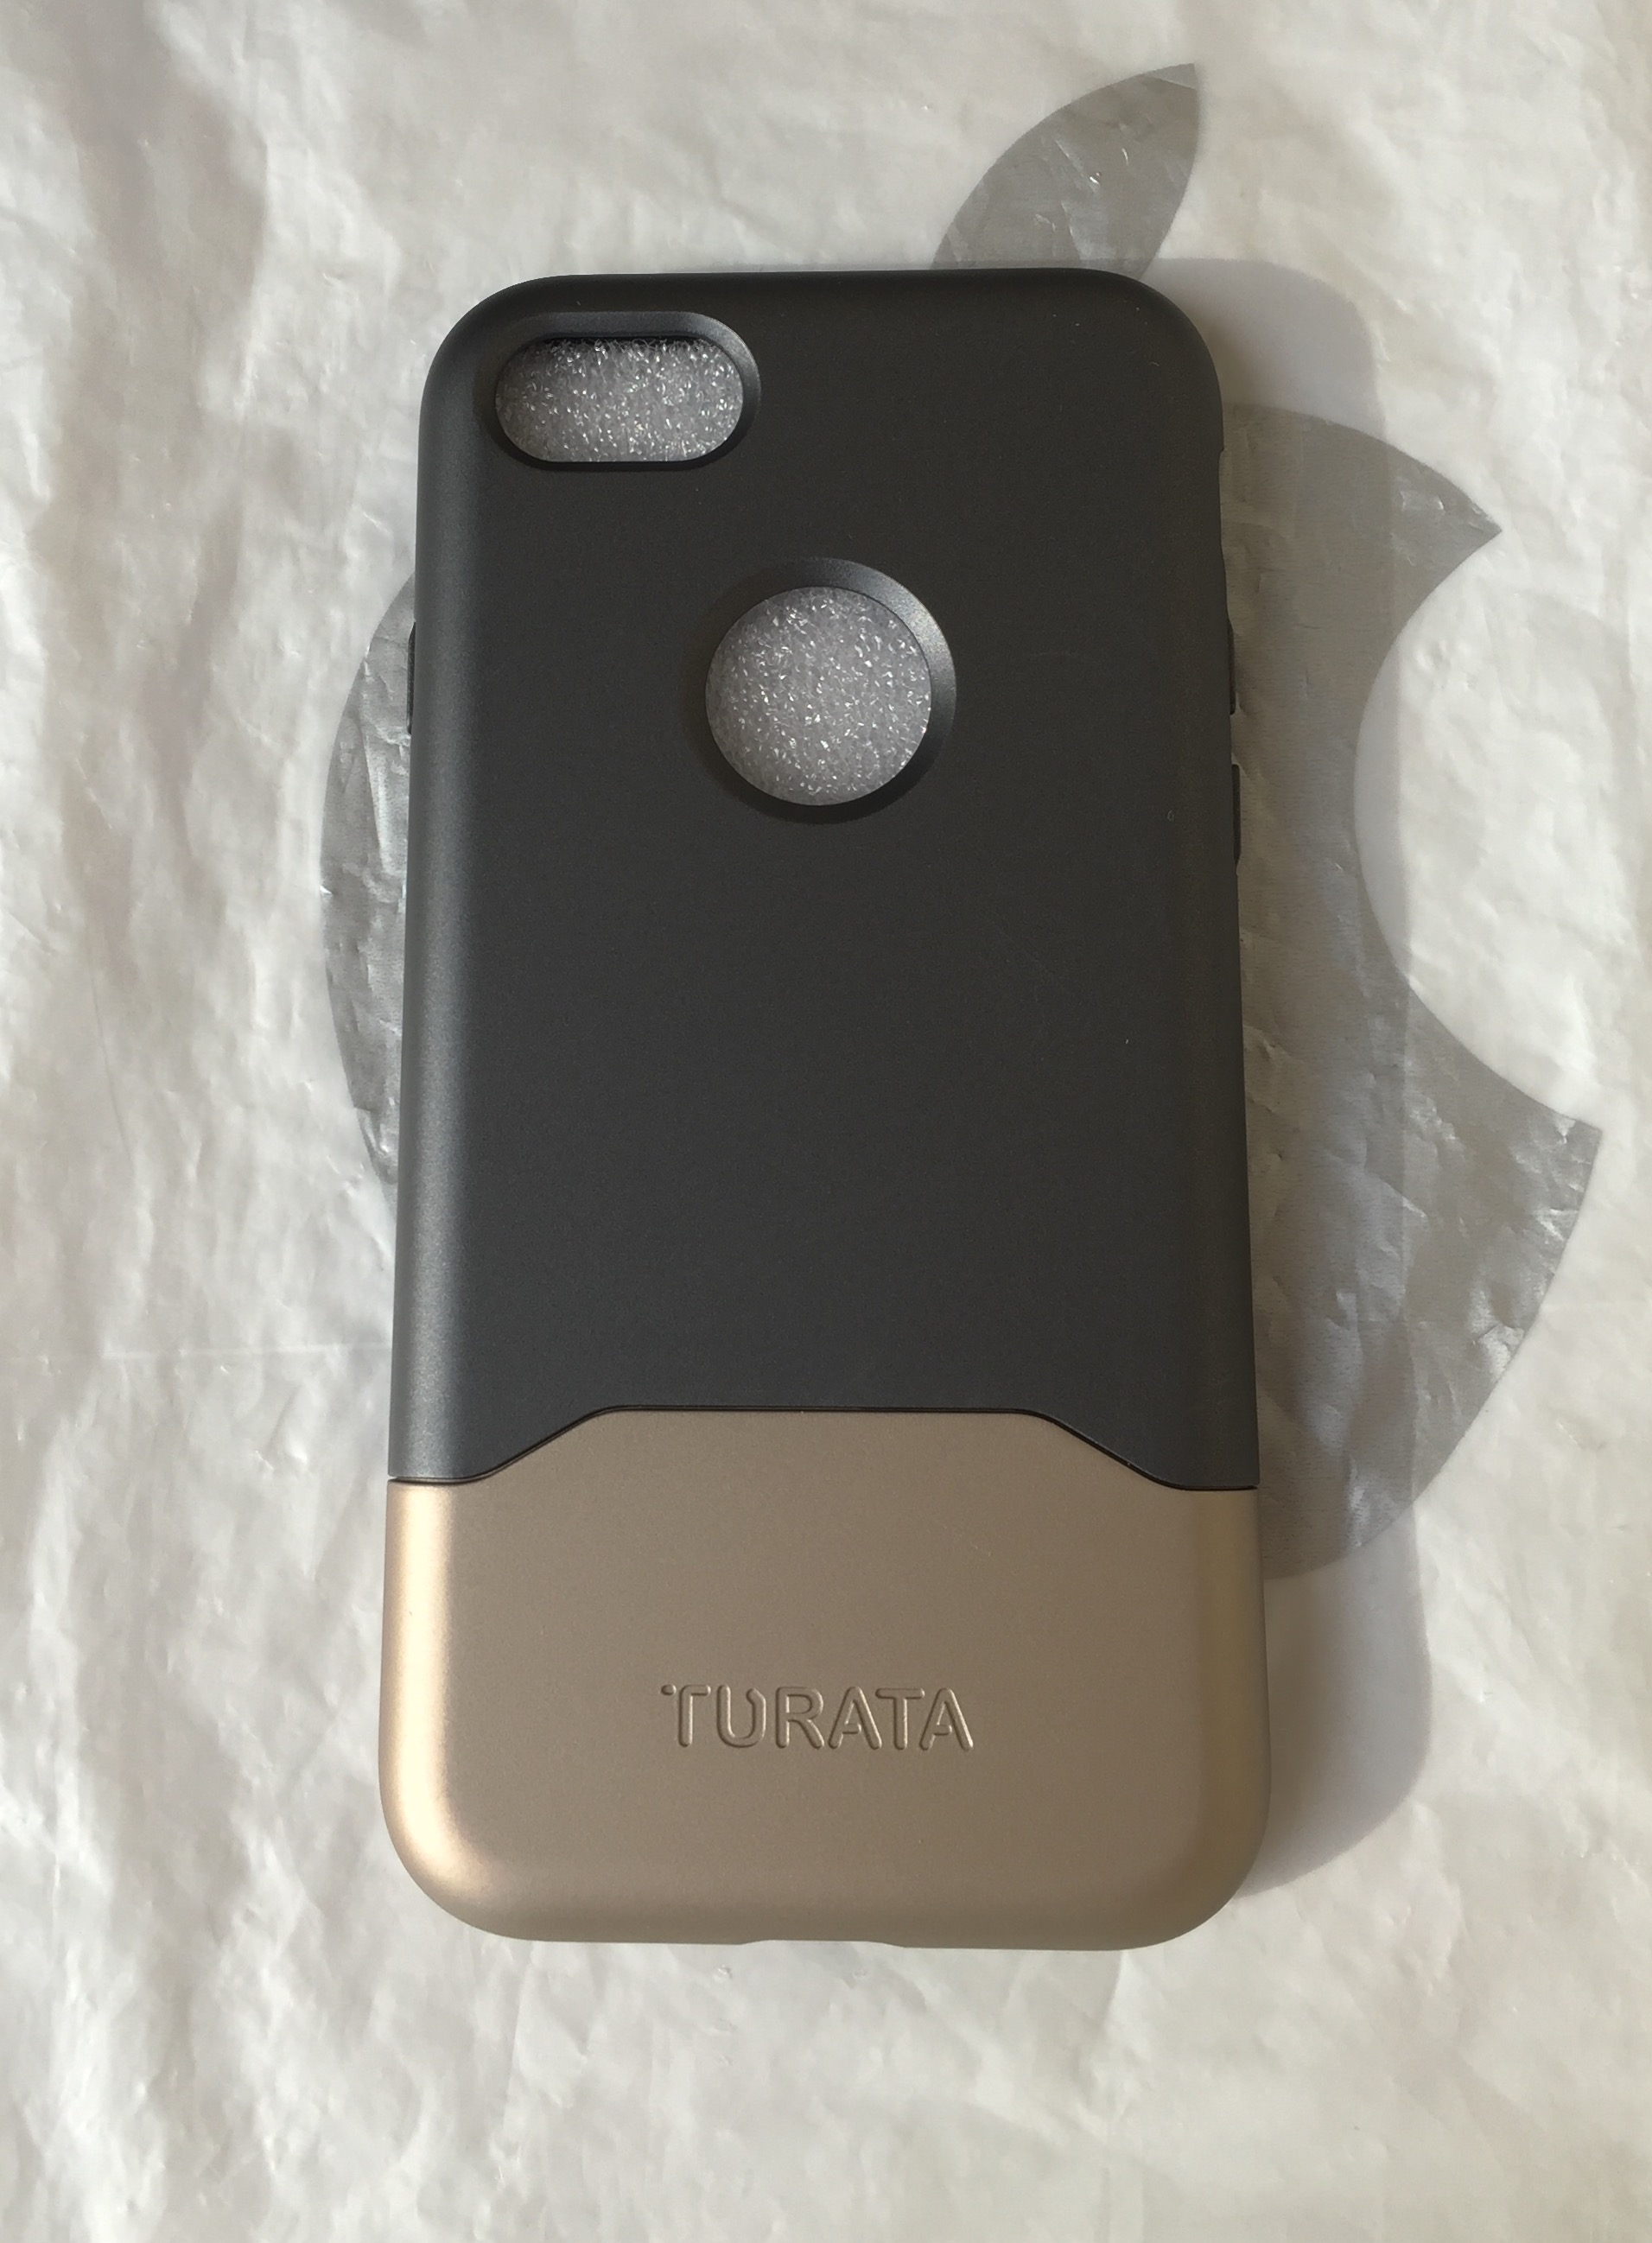 coque turata iphone 7 plus